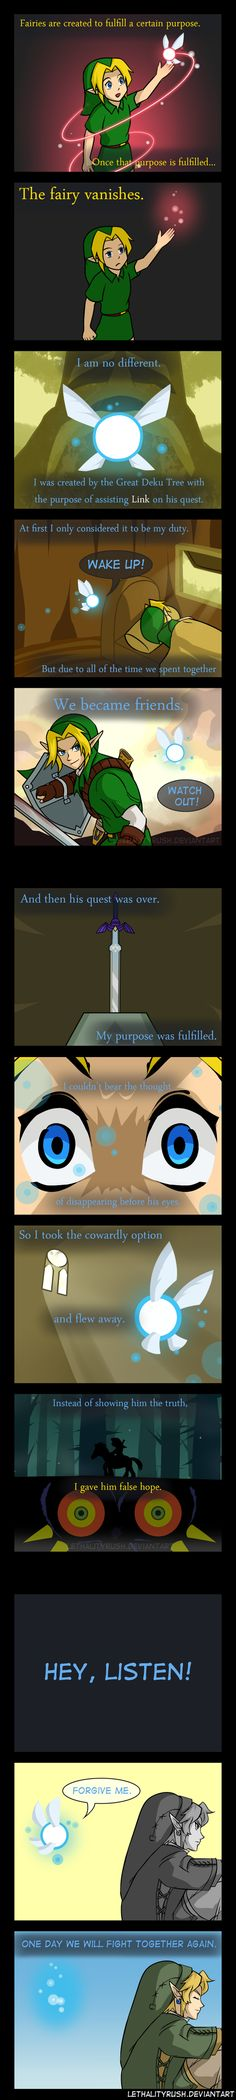 Goodbye Navi by Lethalityrush on deviantART. A beautiful headcanon on Navi and Link... <3